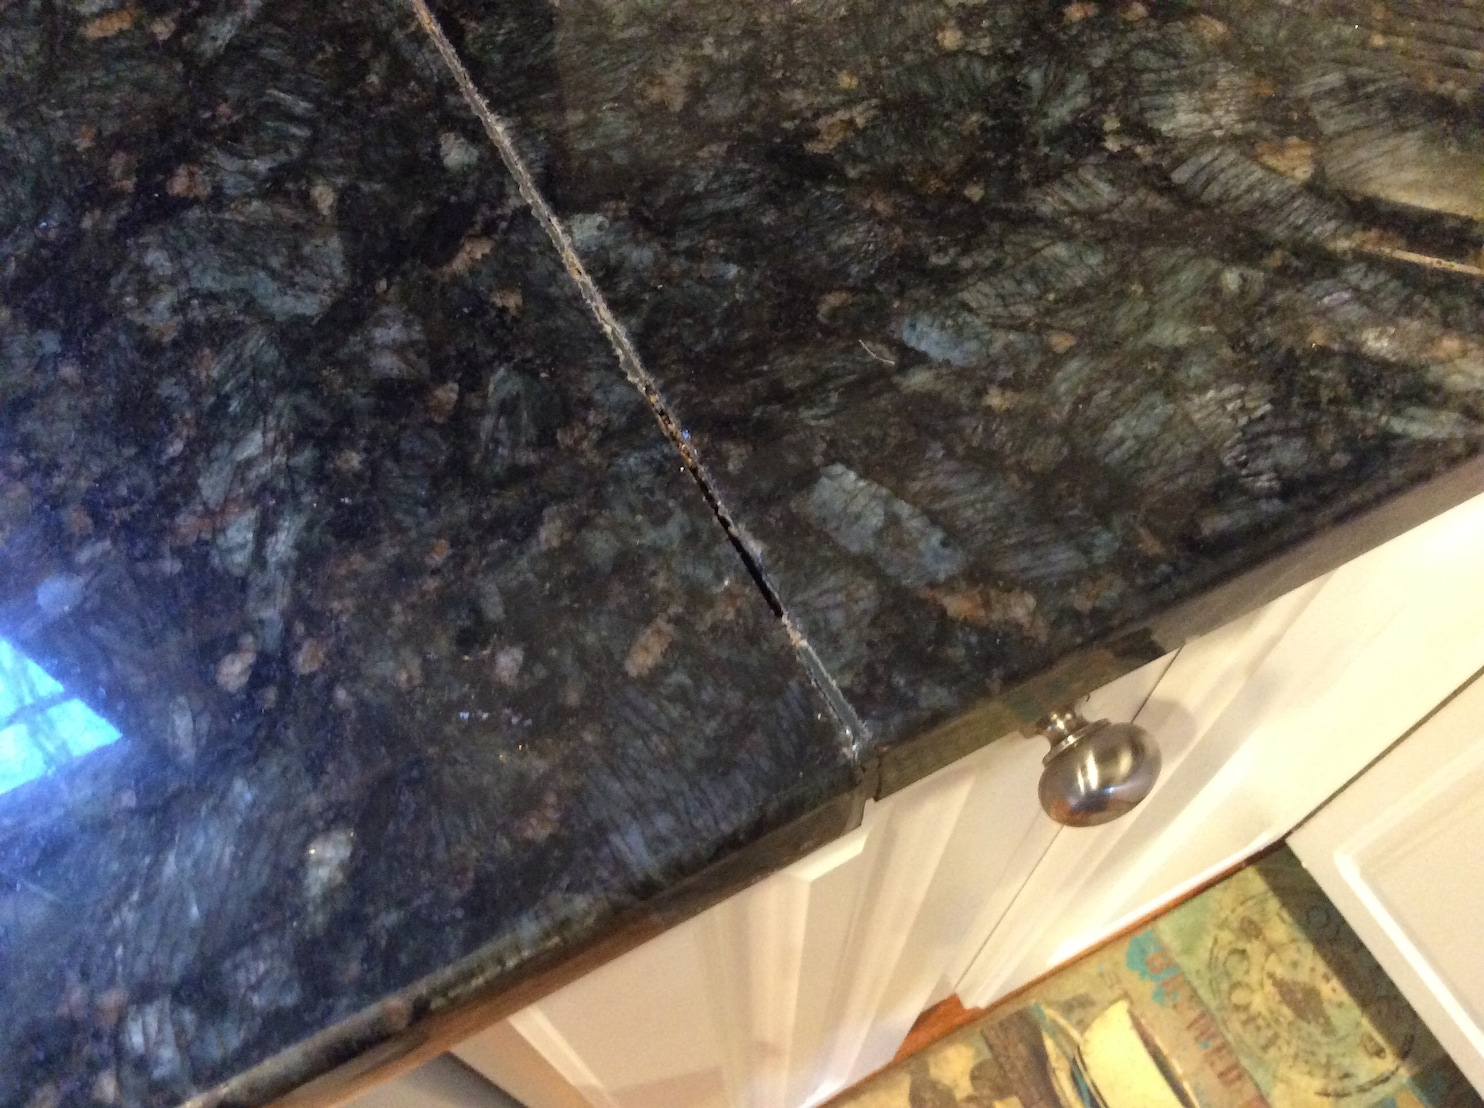 How To Repair Marble Countertops How To Restore The Seam In A Granite Countertop The